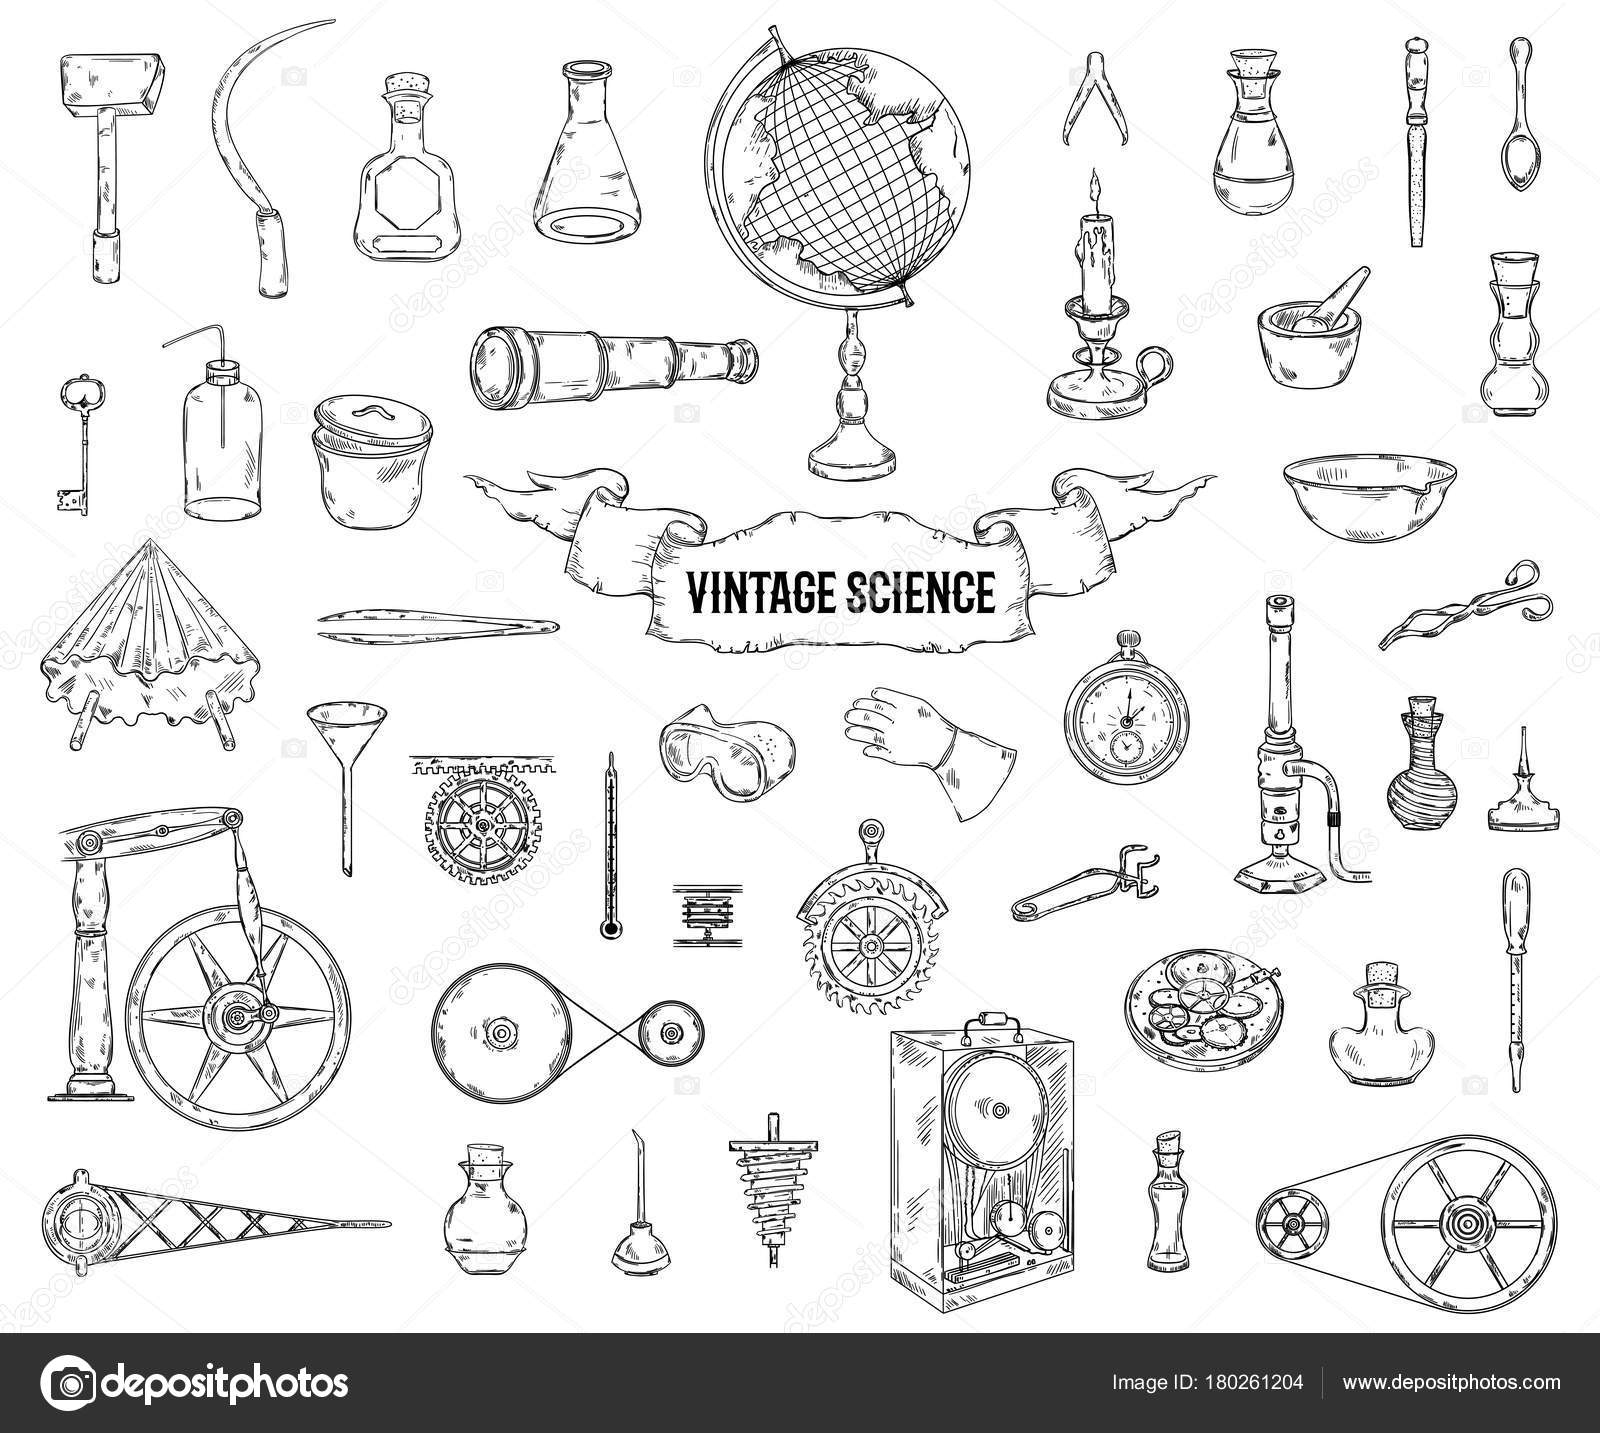 vintage science objects set ste unk style scientific equipment  vintage science objects set ste unk style scientific equipment physics chemistry stock vector